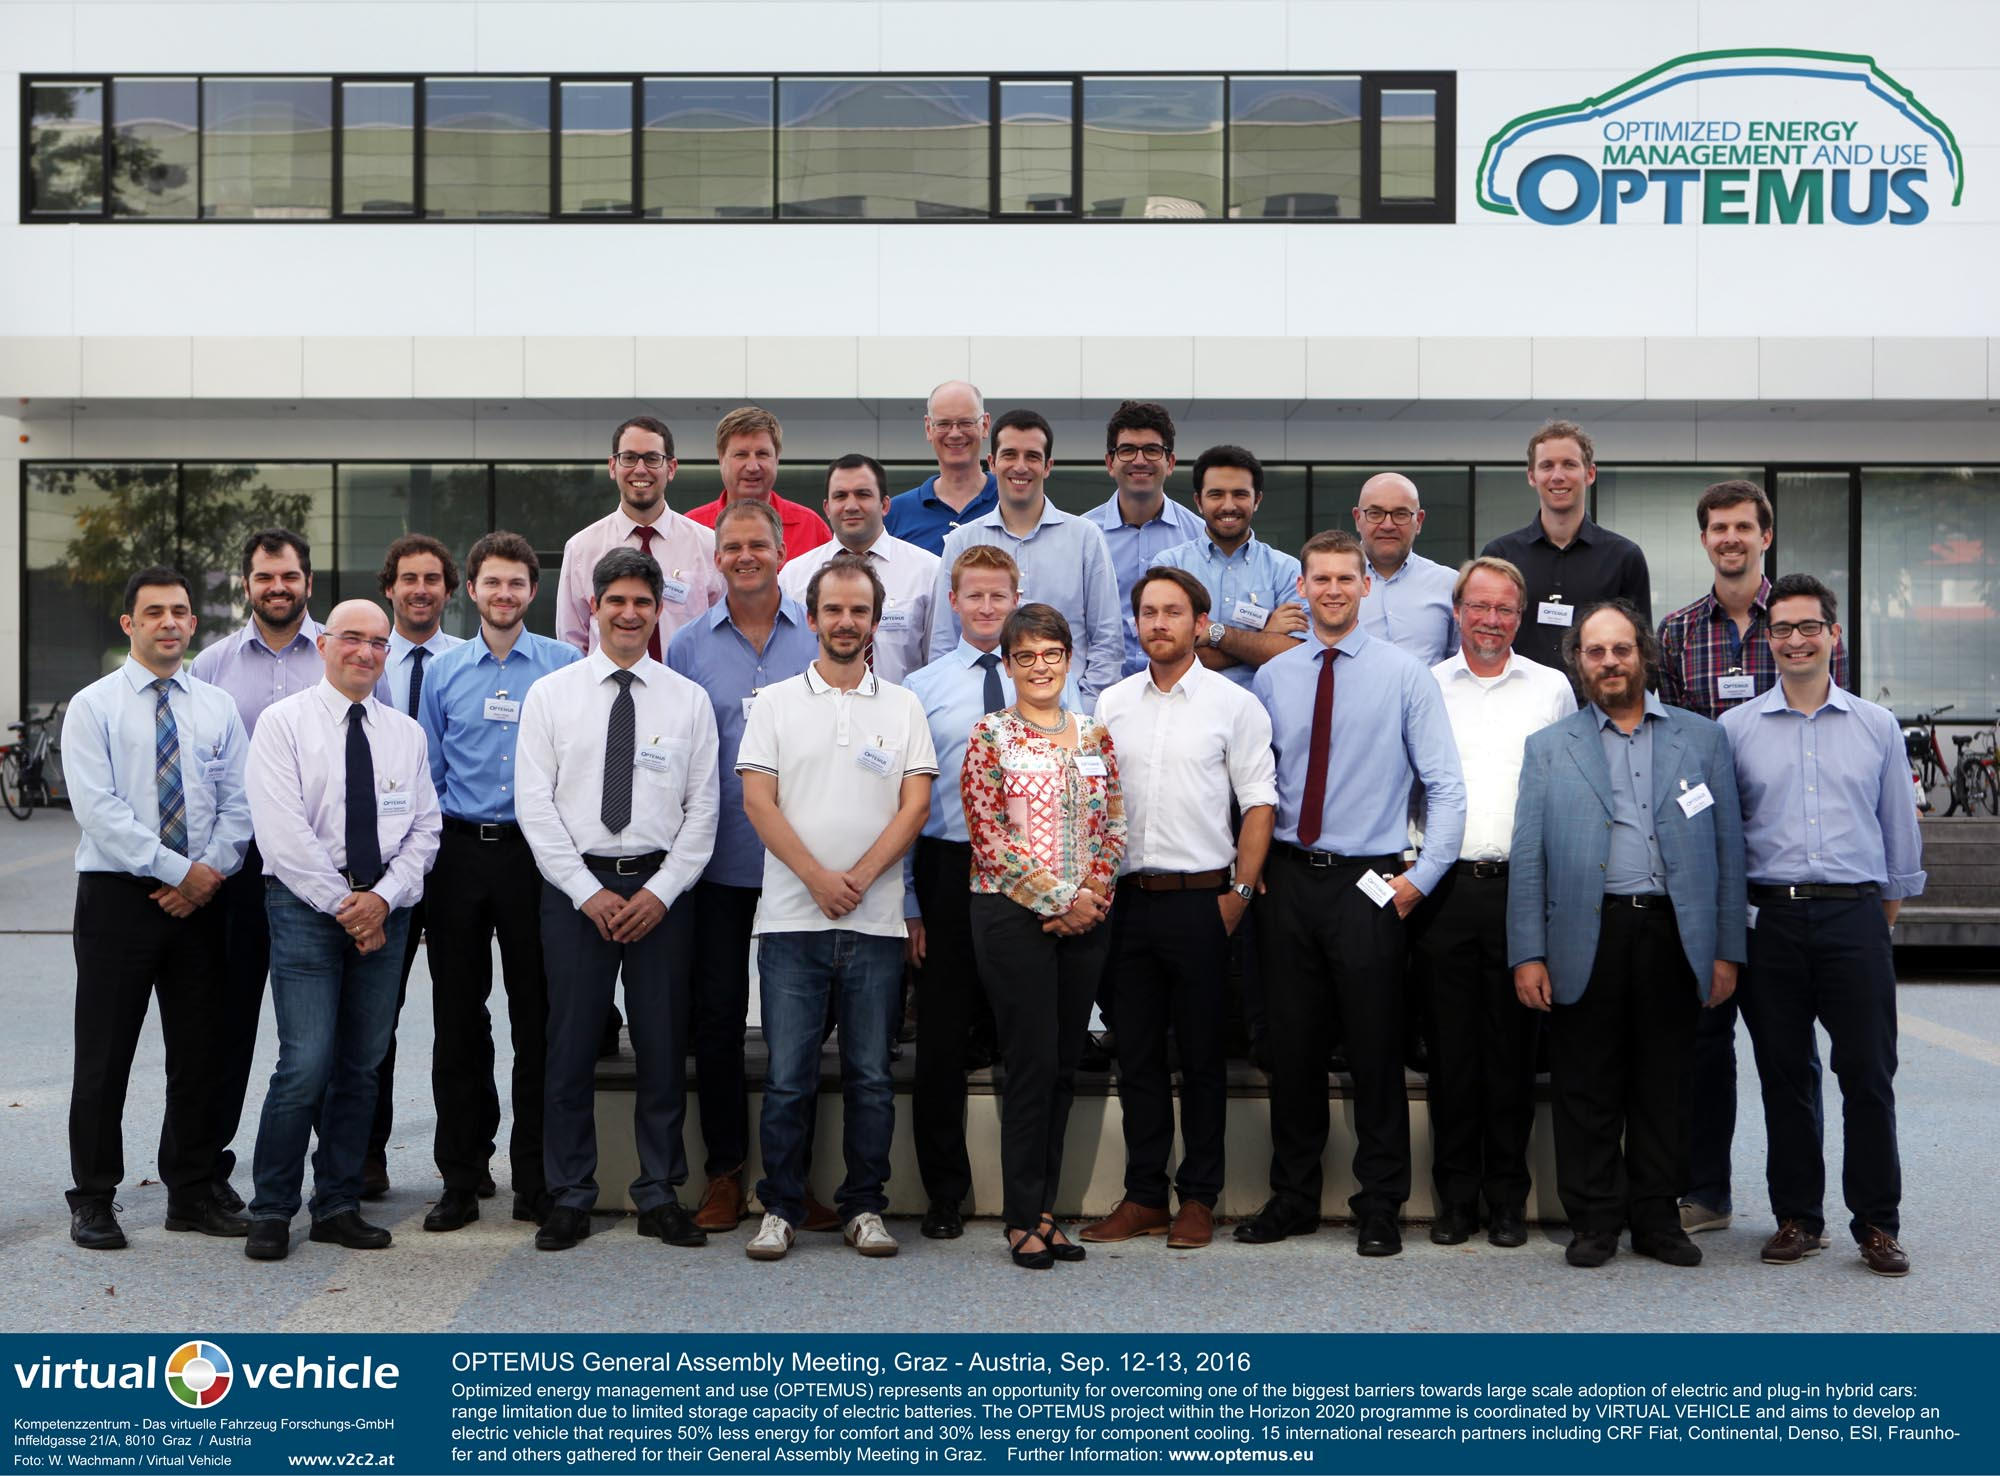 OPTEMUS General Assembly Meeting, Graz - Austria, Sep. 12-13, 2016  -  Optimized energy management and use (OPTEMUS) represents an opportunity for overcoming one of the biggest barriers towards large scale adoption of electric and plug-in hybrid cars: range limitation due to limited storage capacity of electric batteries. The OPTEMUS project within the Horizon 2020 programme is coordinated by VIRTUAL VEHICLE and aims to develop an electric vehicle that requires 50% less energy for comfort and 30% less energy for component cooling. 15 international research partners including CRF Fiat, Continental, Denso, ESI, Fraunhofer and others gathered for their General Assembly Meeting in Graz.    Further Information: www.optemus.eu